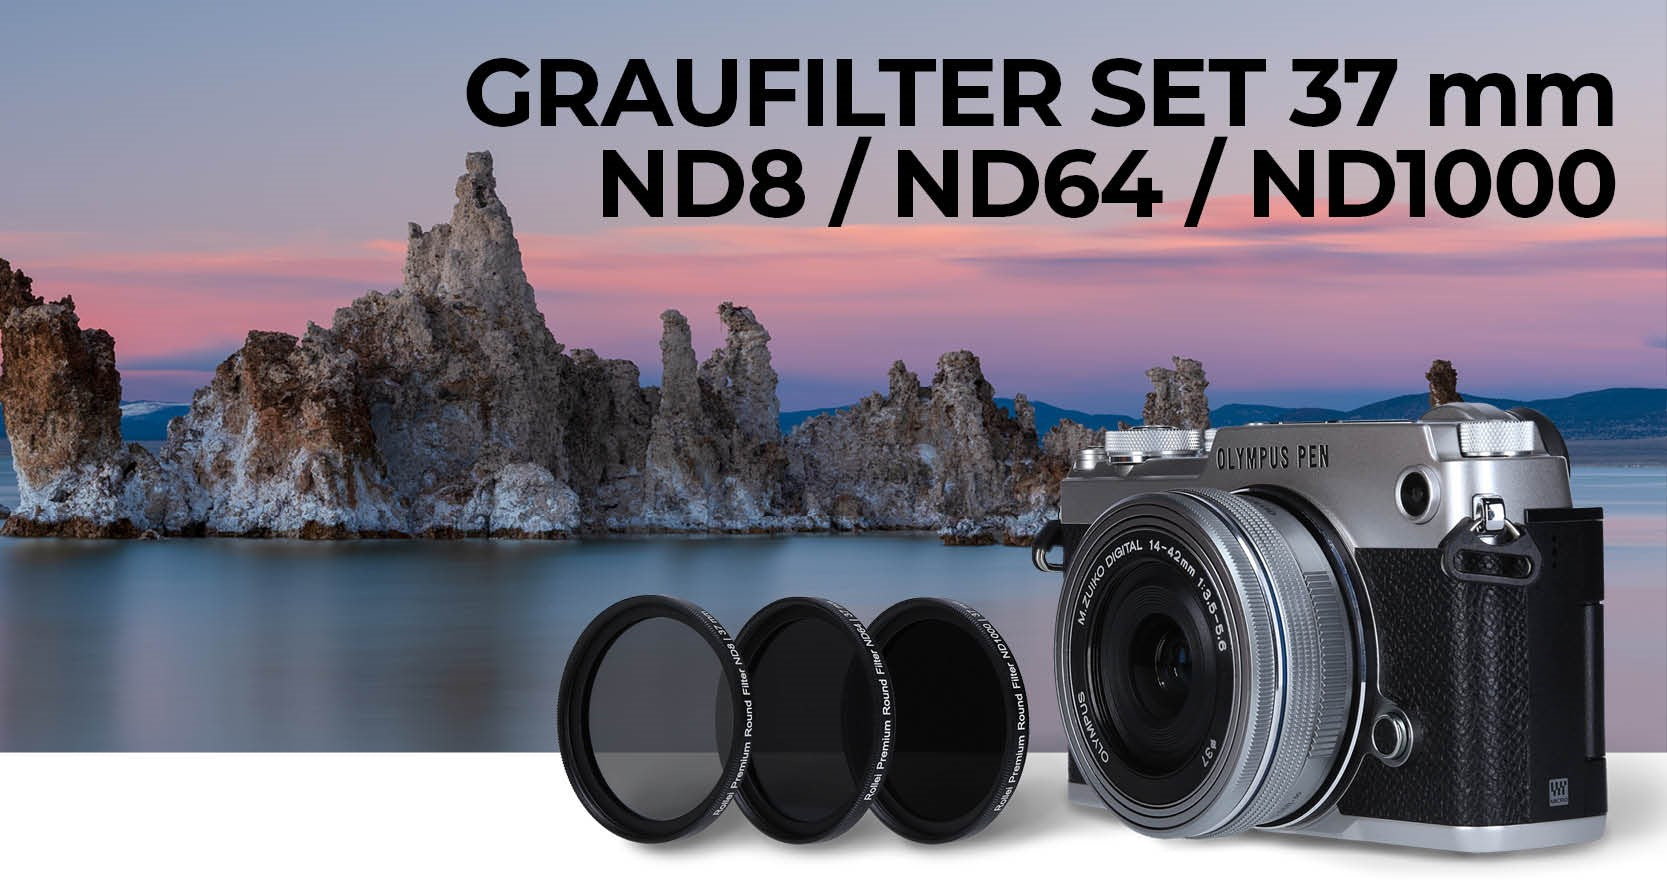 Graufilter-Set 37mm